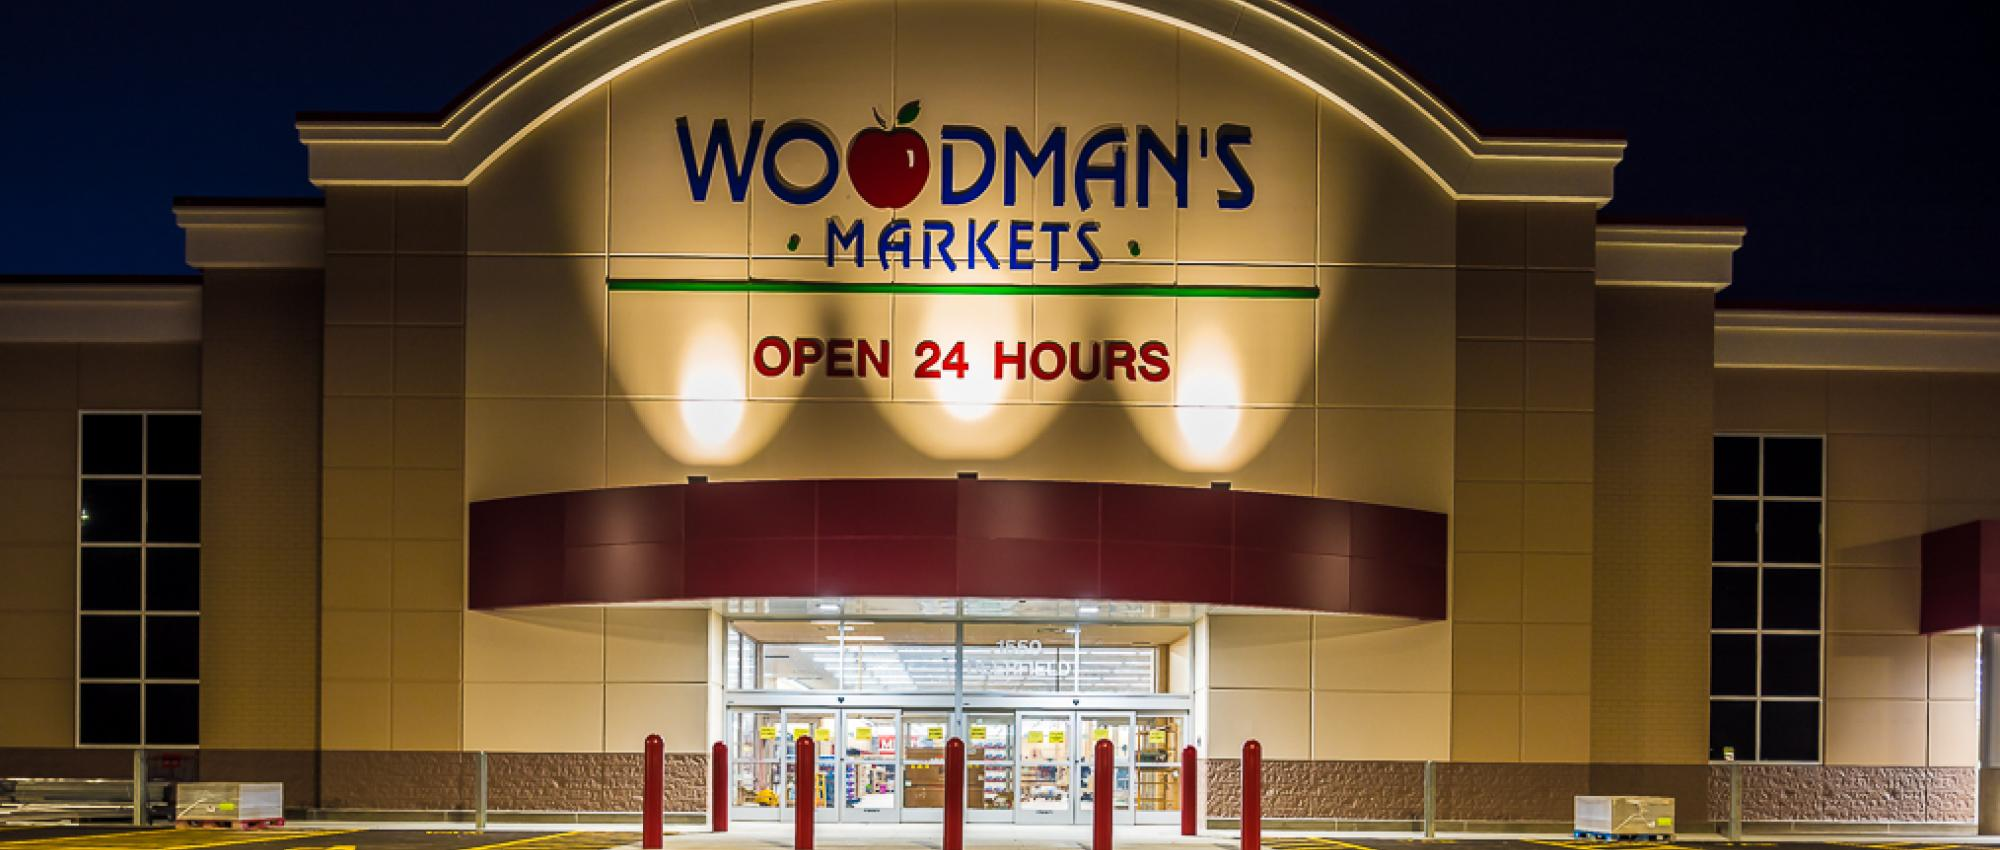 Woodman's front at night